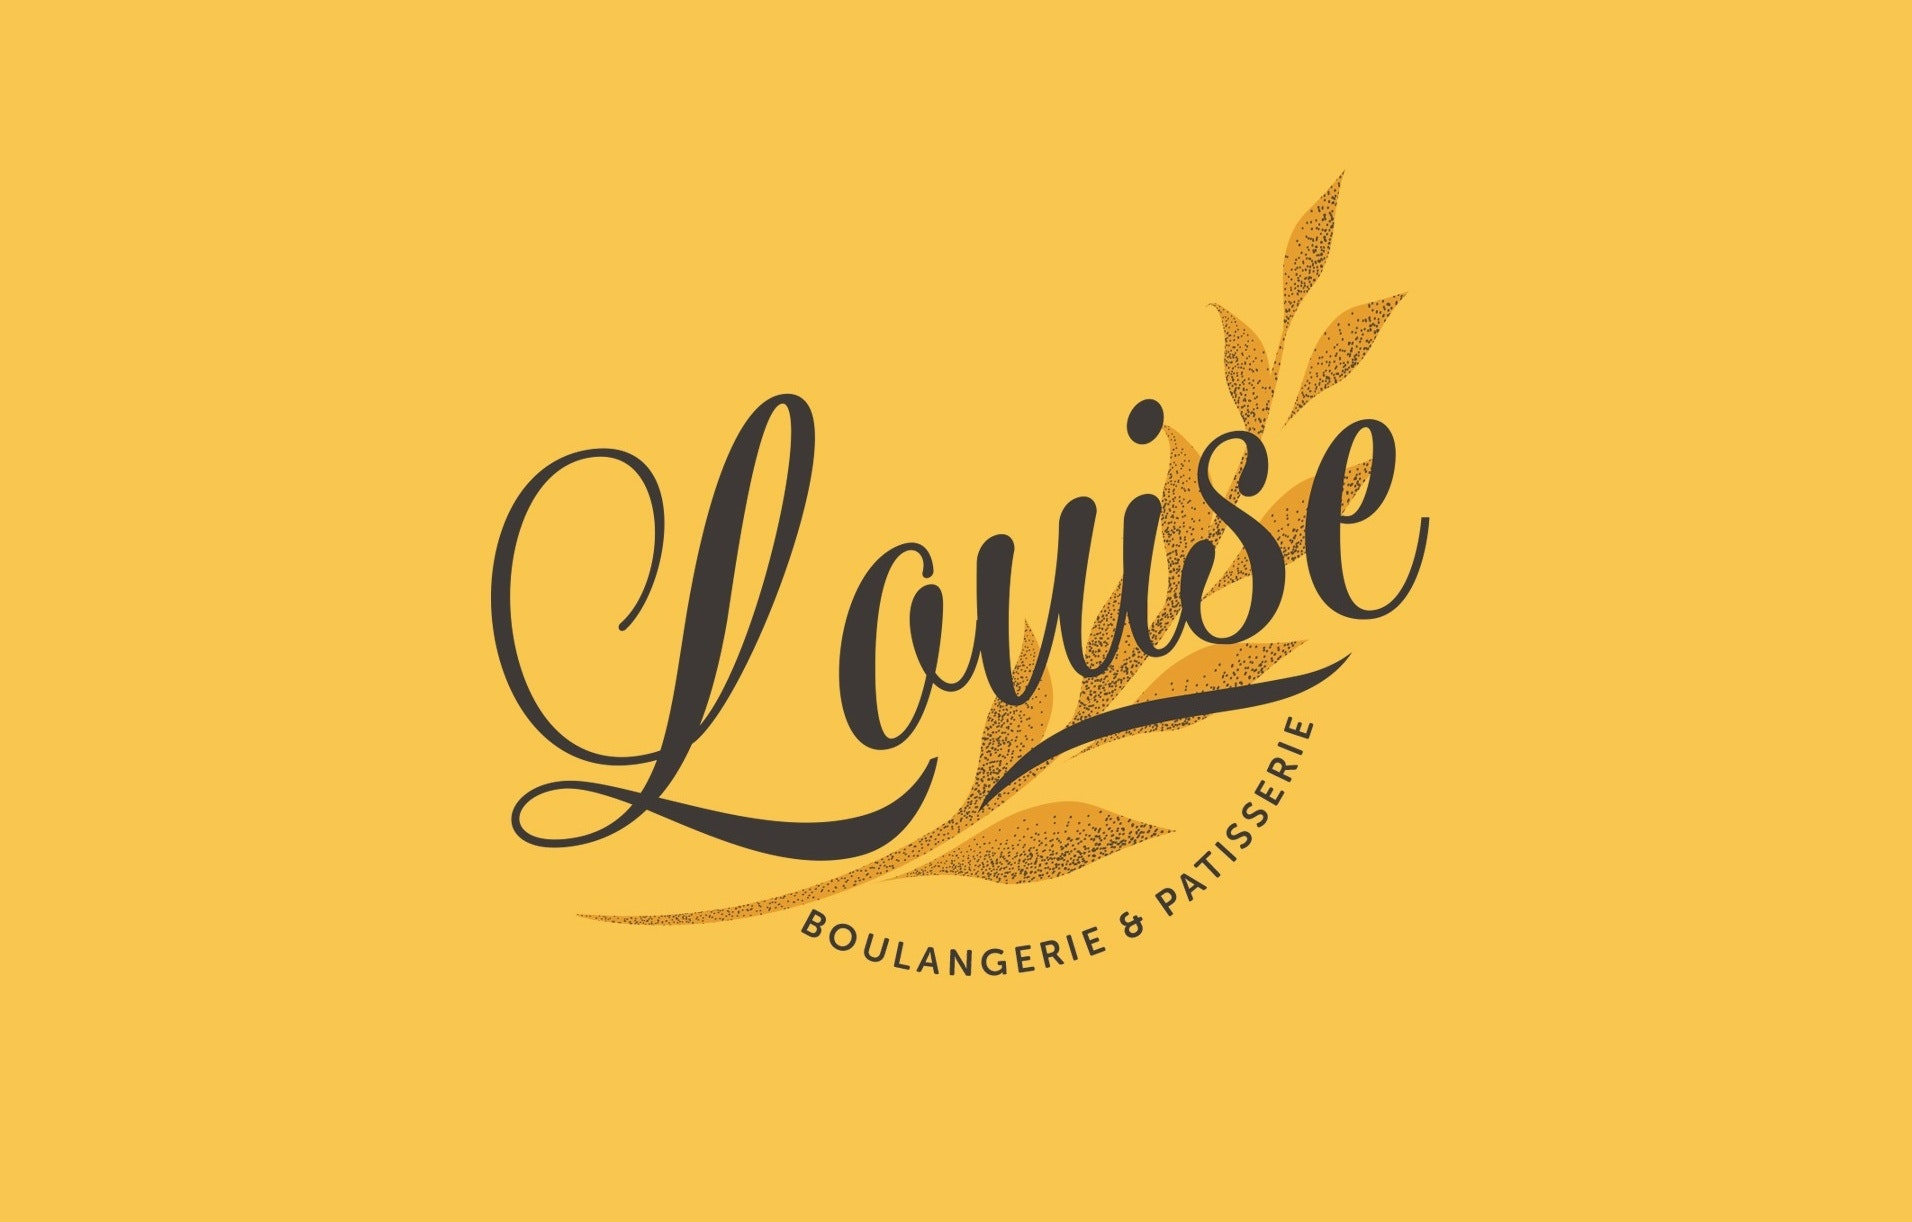 Louise Boulangerie and Patisserie logo